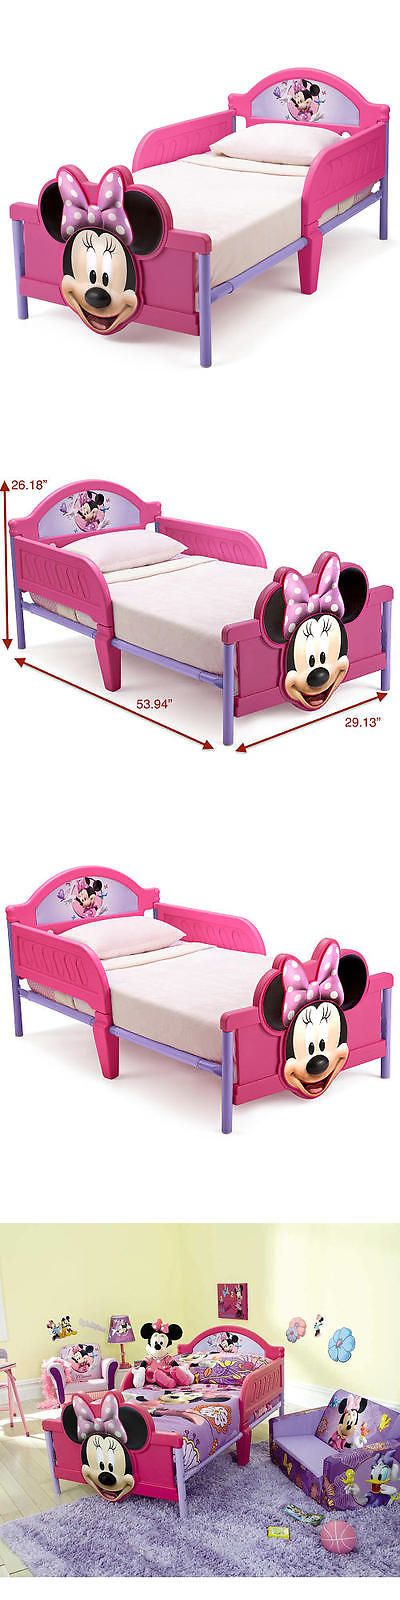 Kids Furniture: Disney Minnie Mouse 3D Toddler Bed BUY IT NOW ONLY: $59.99